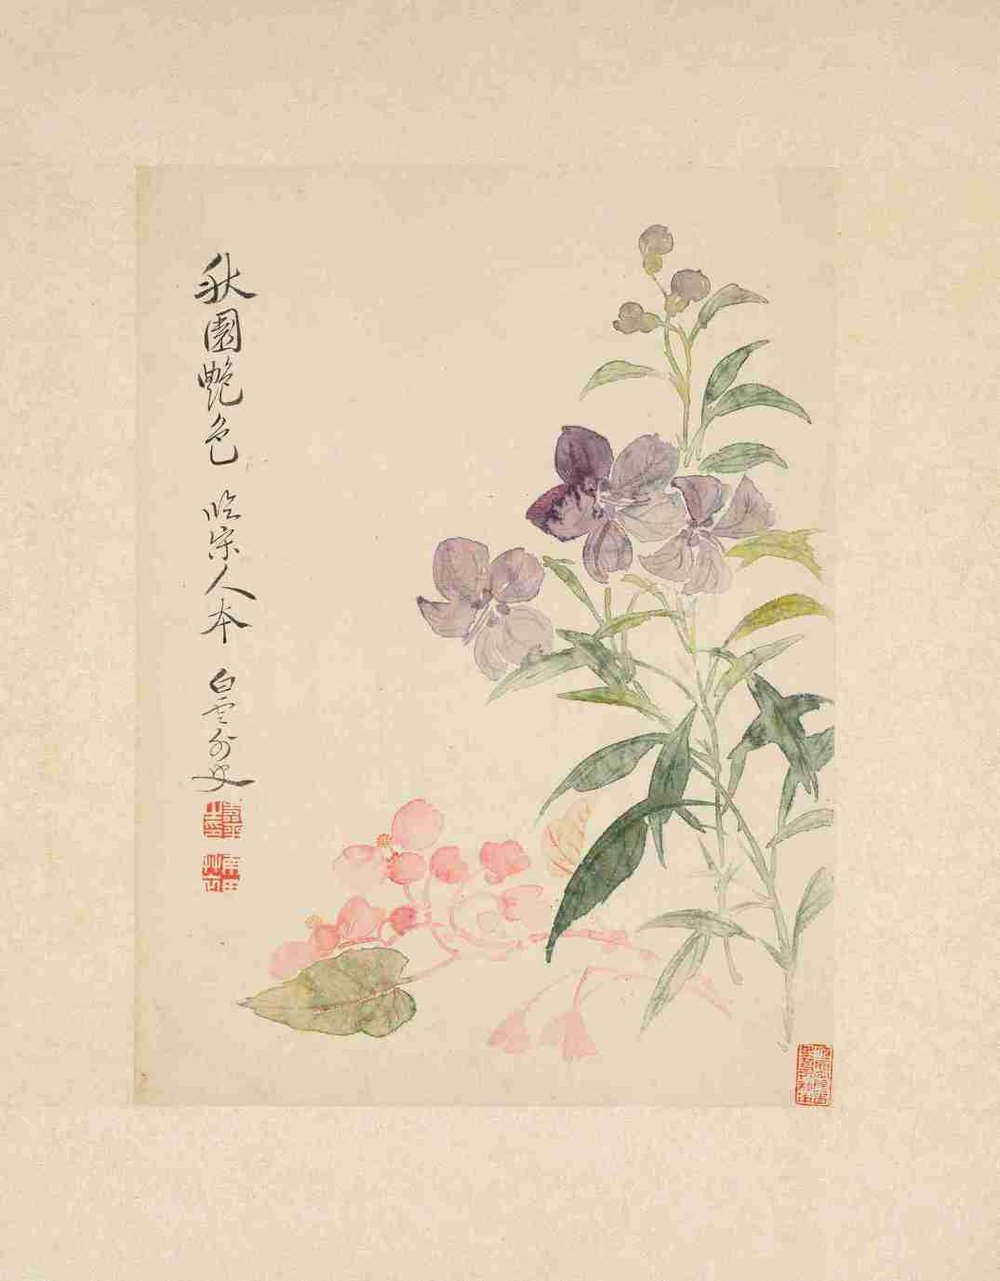 Autumn flowers-YunShouping (R).jpg